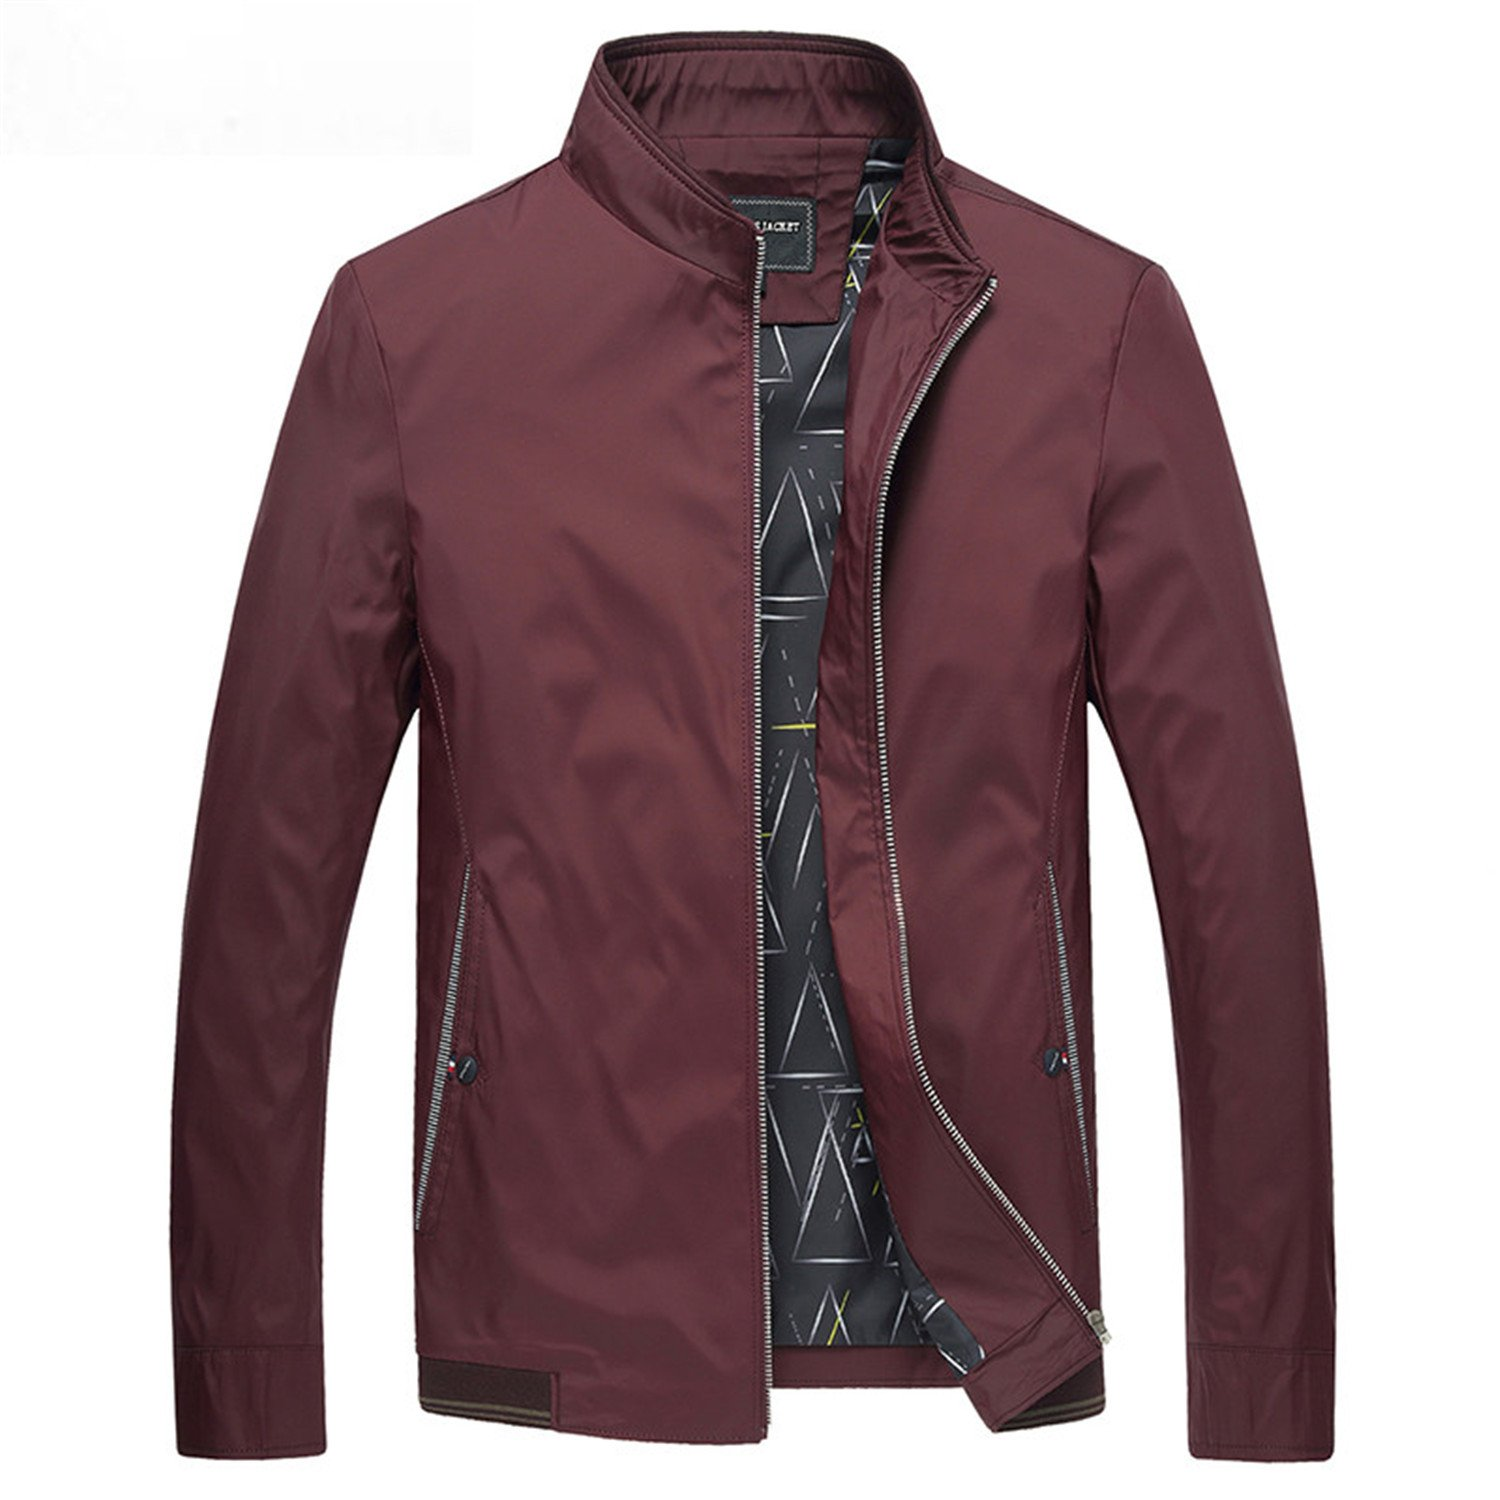 Jamemcabin Bomber Jacket Men Coat Spring Casual Basic Jacket Mens Army Zip Jackets Male Coat For Men Outwear Burgundy XL at Amazon Mens Clothing store: